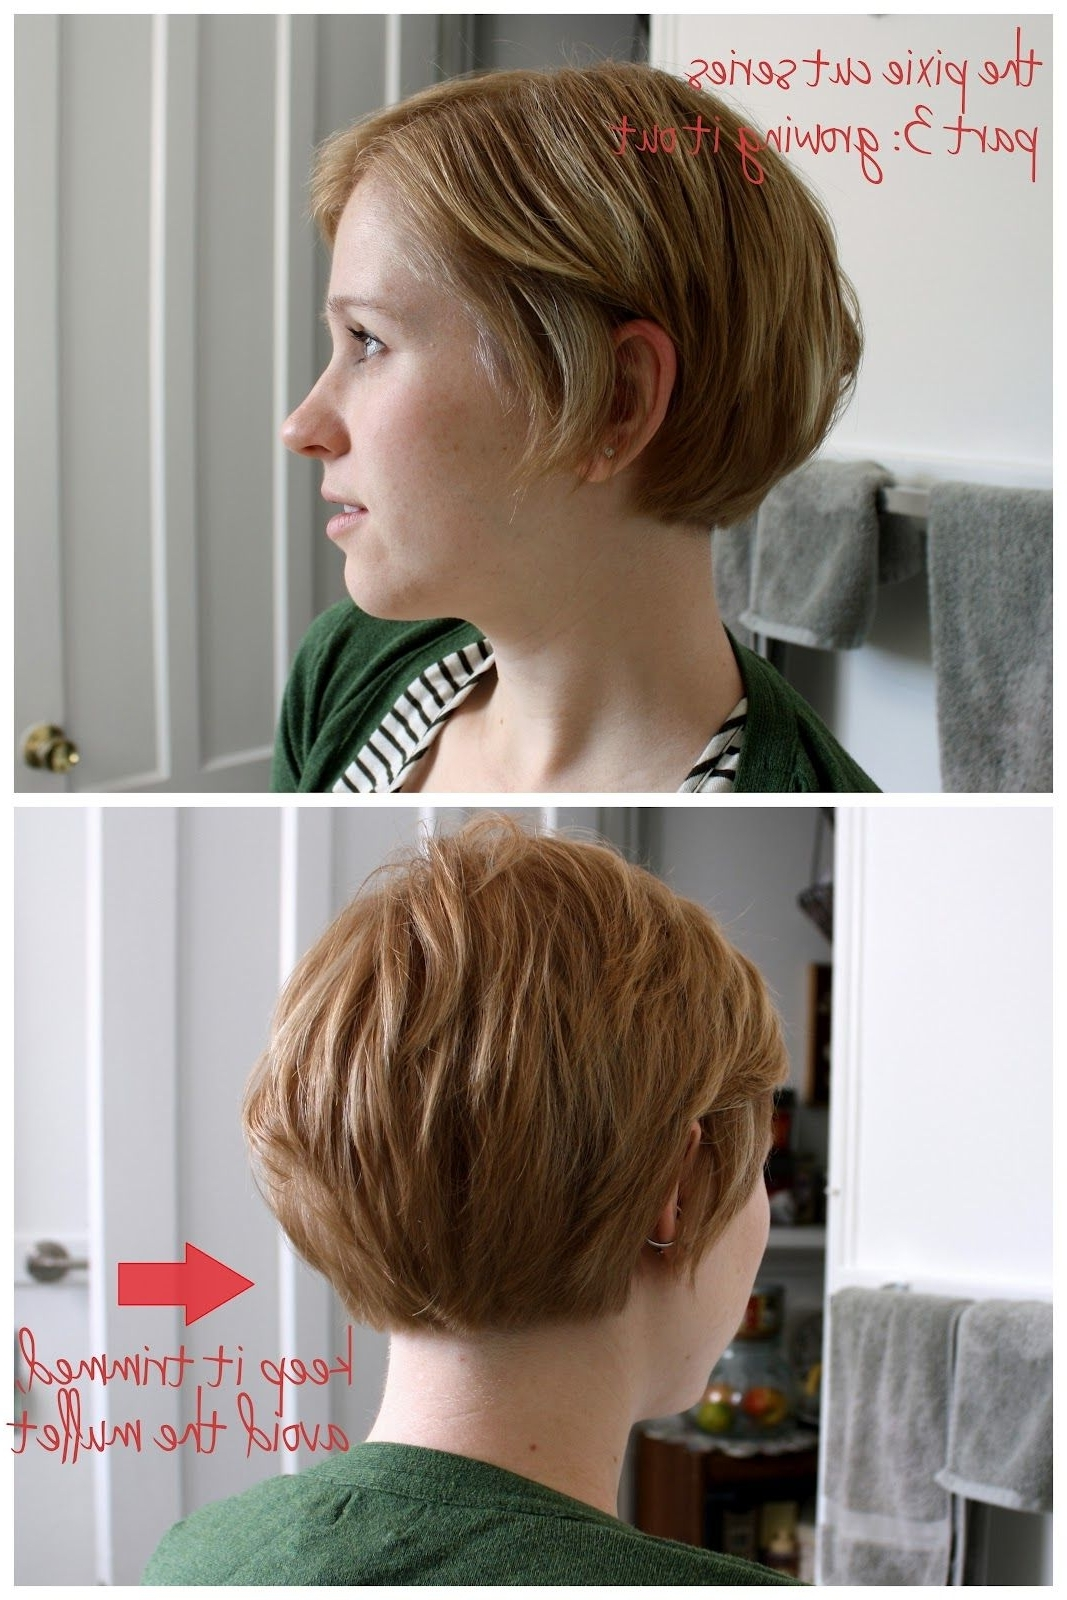 Short Bob Hairstyles Back View | Unspeakable Visions: The Pixie Cut Within Recent Pixie Wedge Haircuts (View 13 of 15)